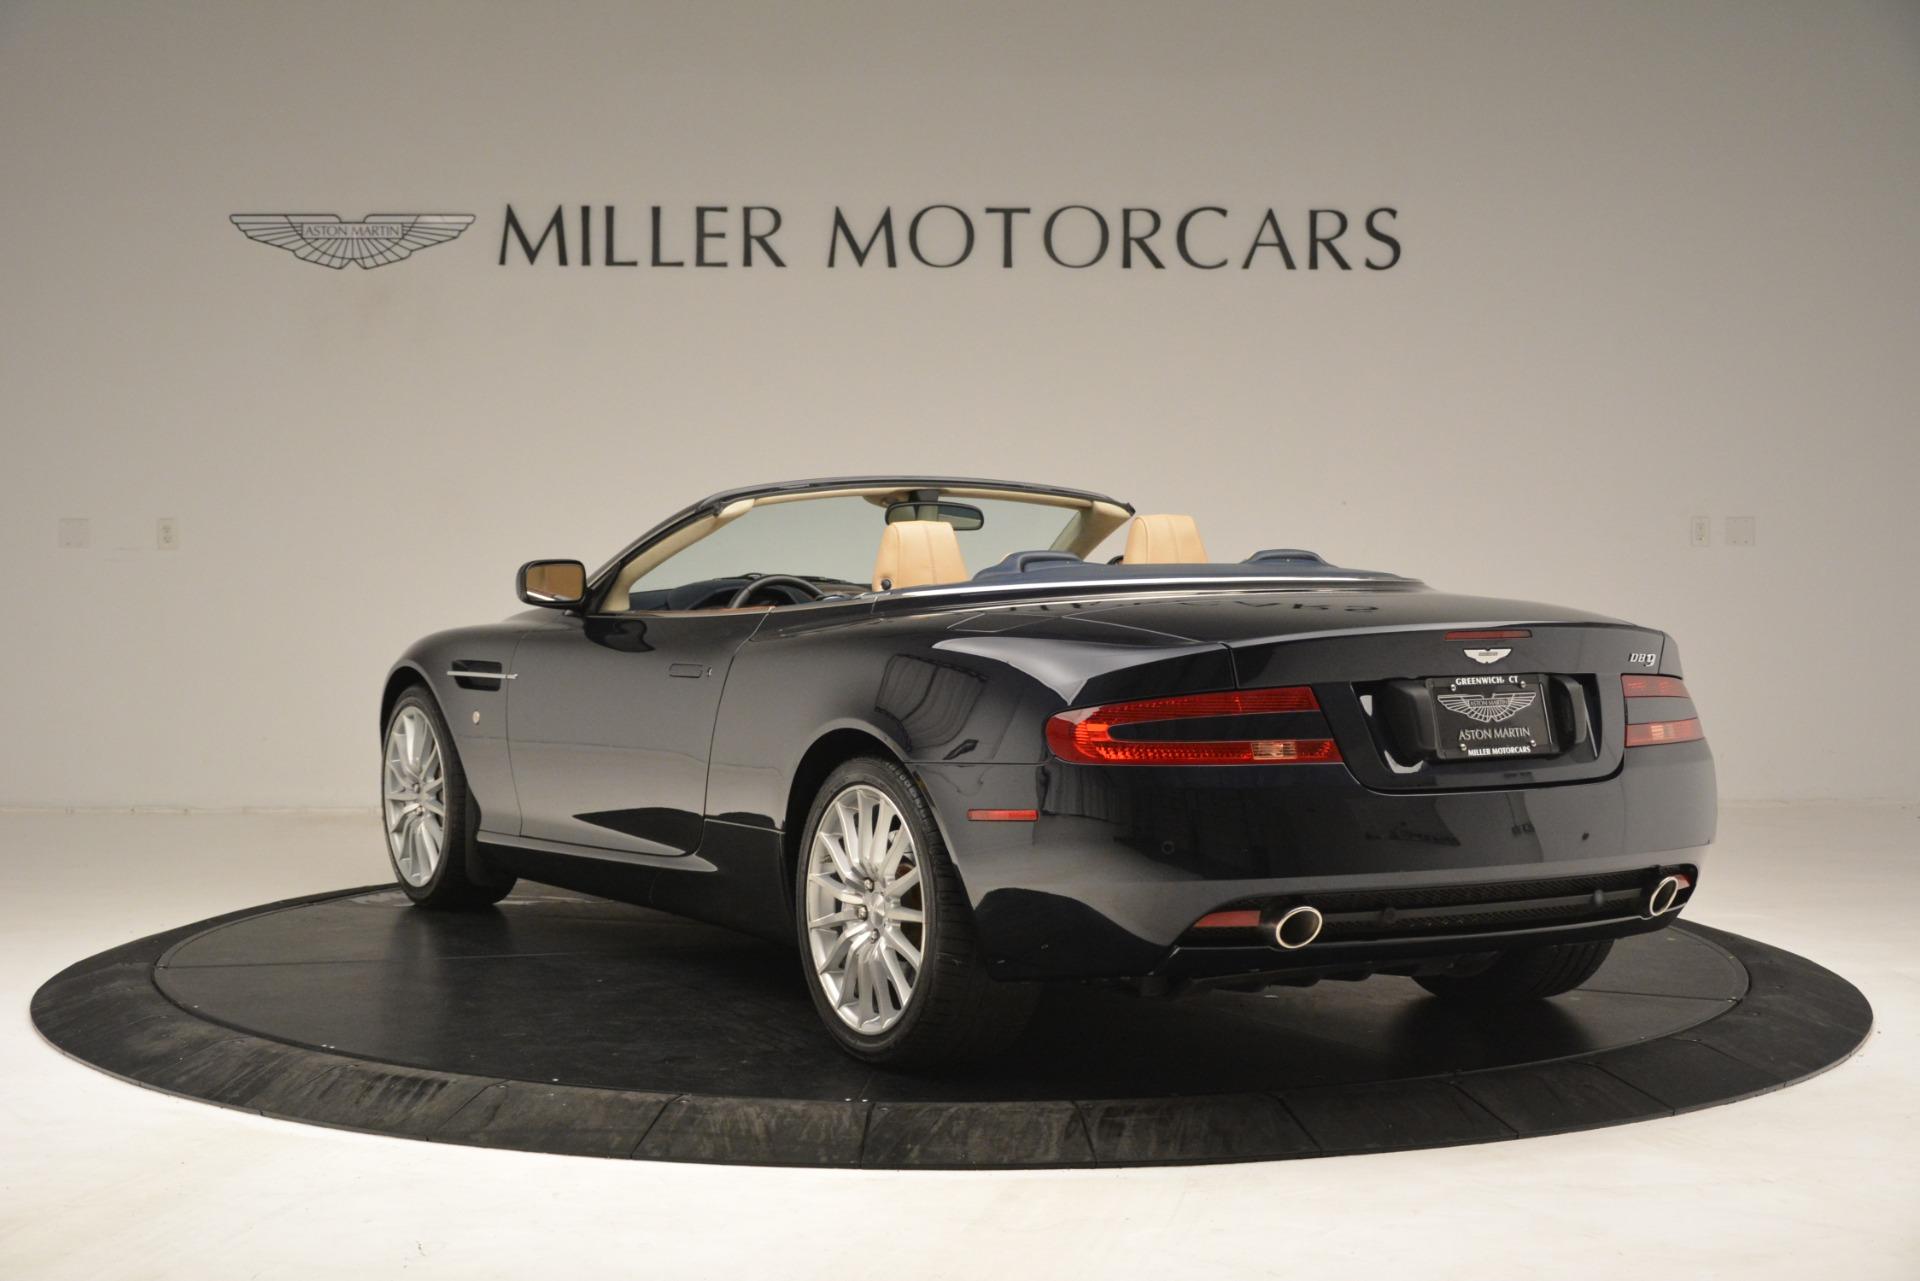 Used 2007 Aston Martin DB9 Convertible For Sale In Westport, CT 3291_p5